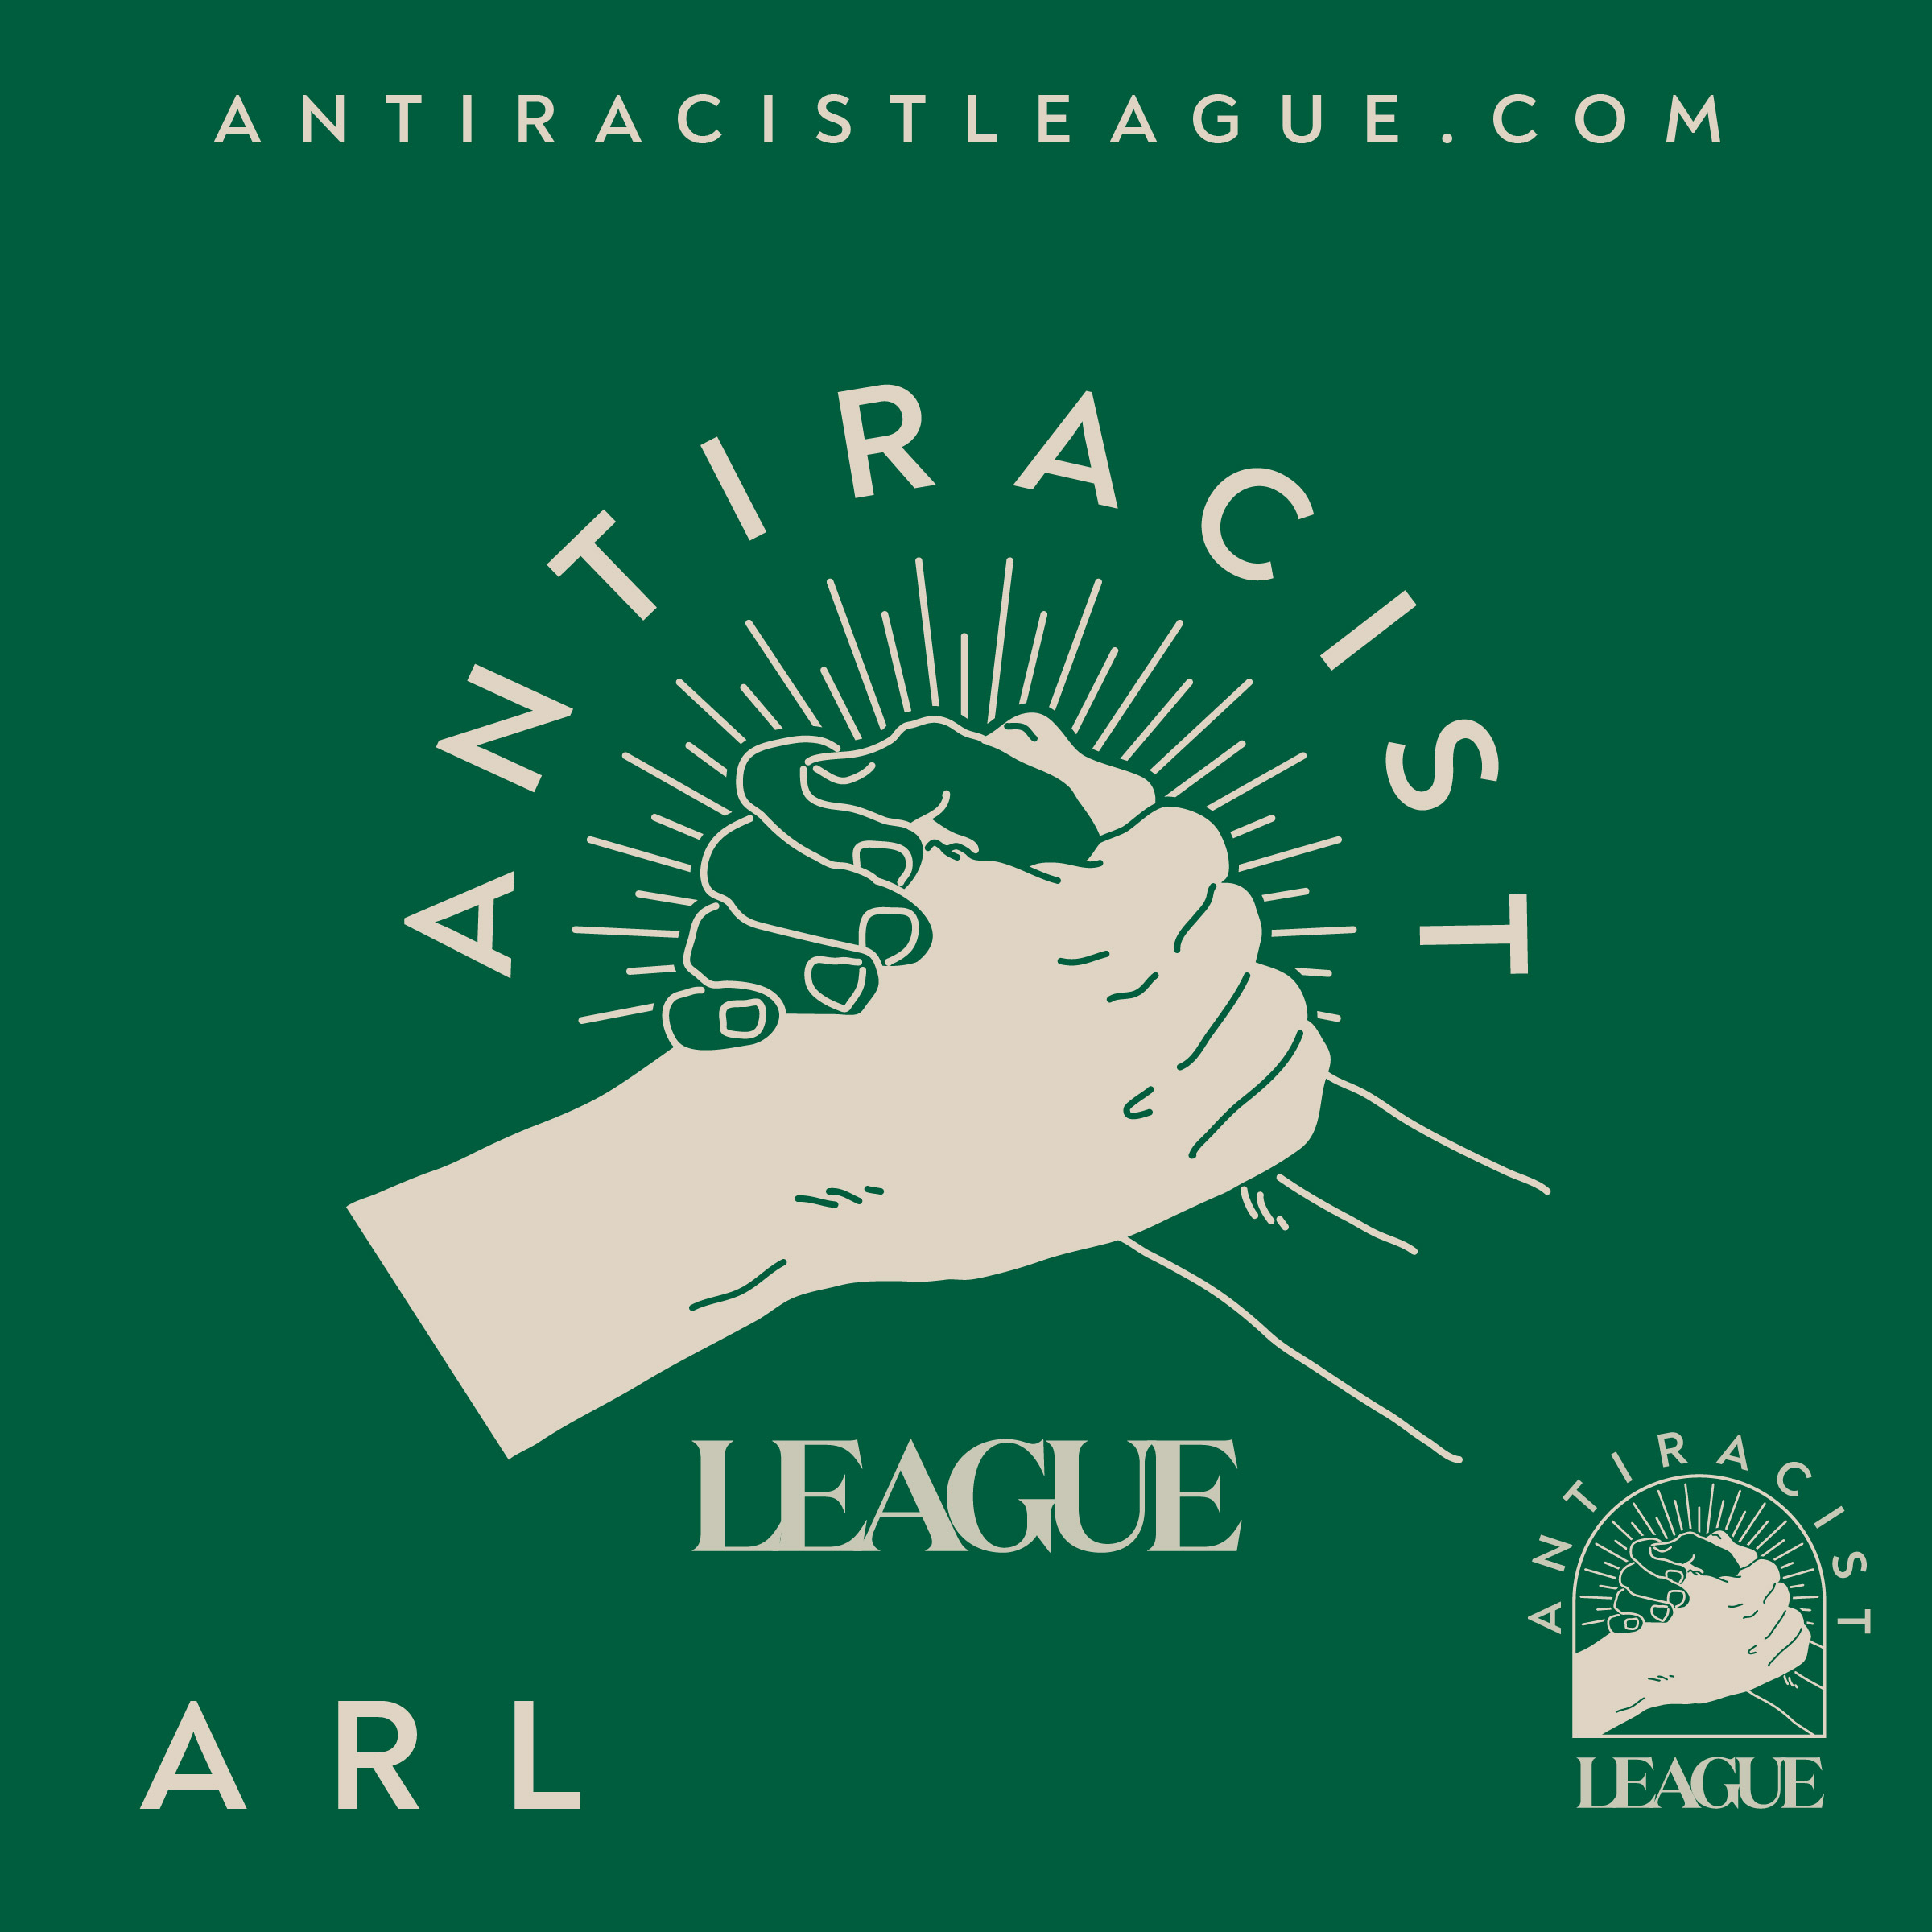 antiracistleague